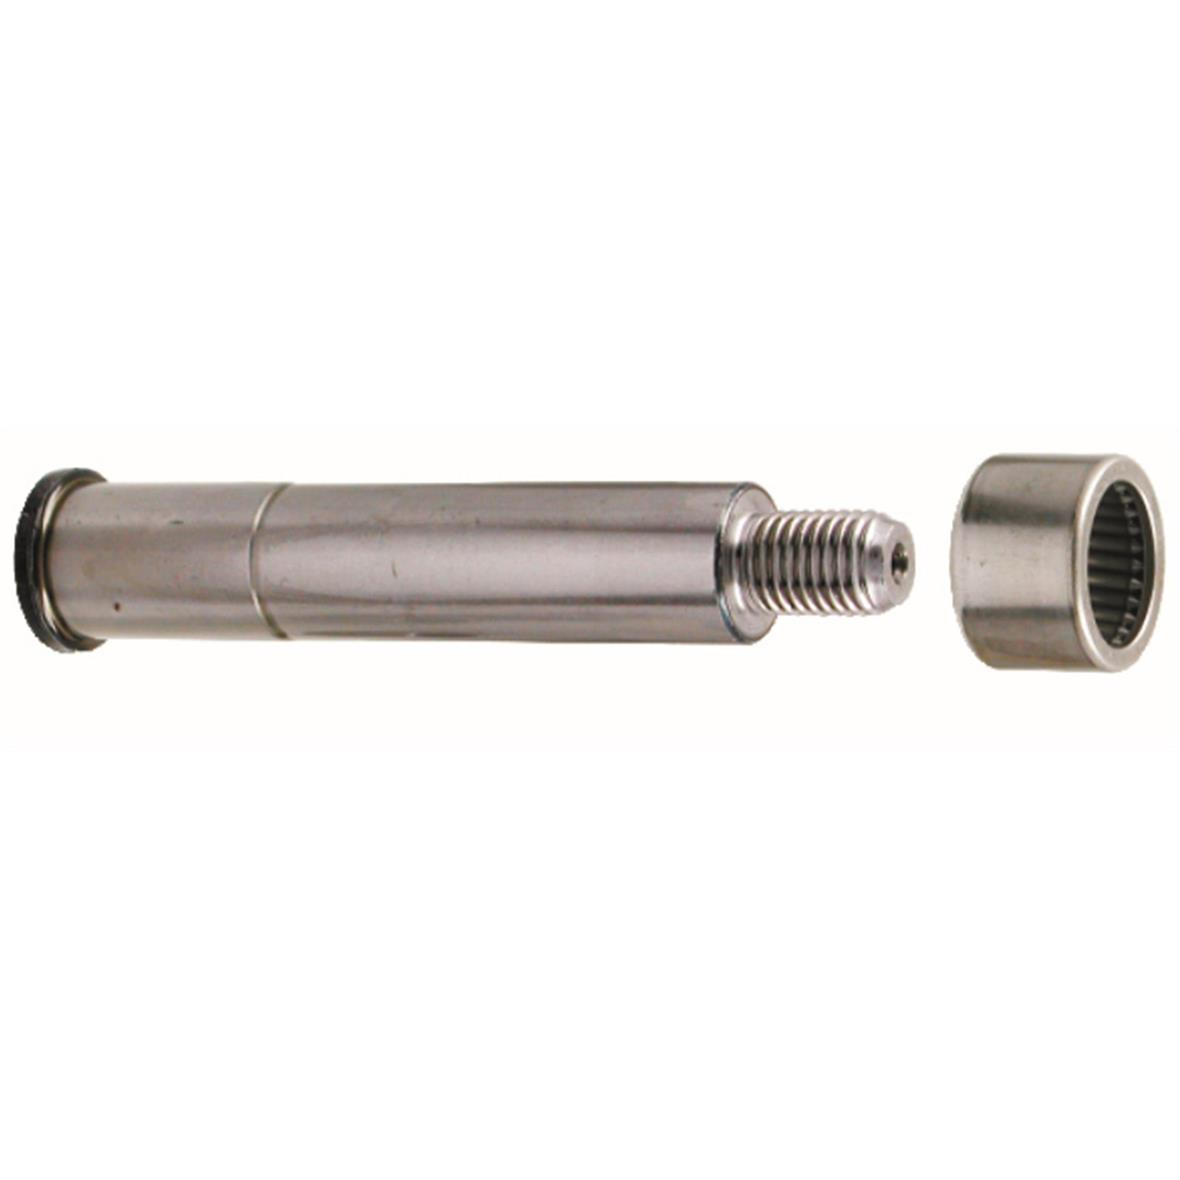 Product Image for 'Bearing Set Suspension Arm RMSTitle'